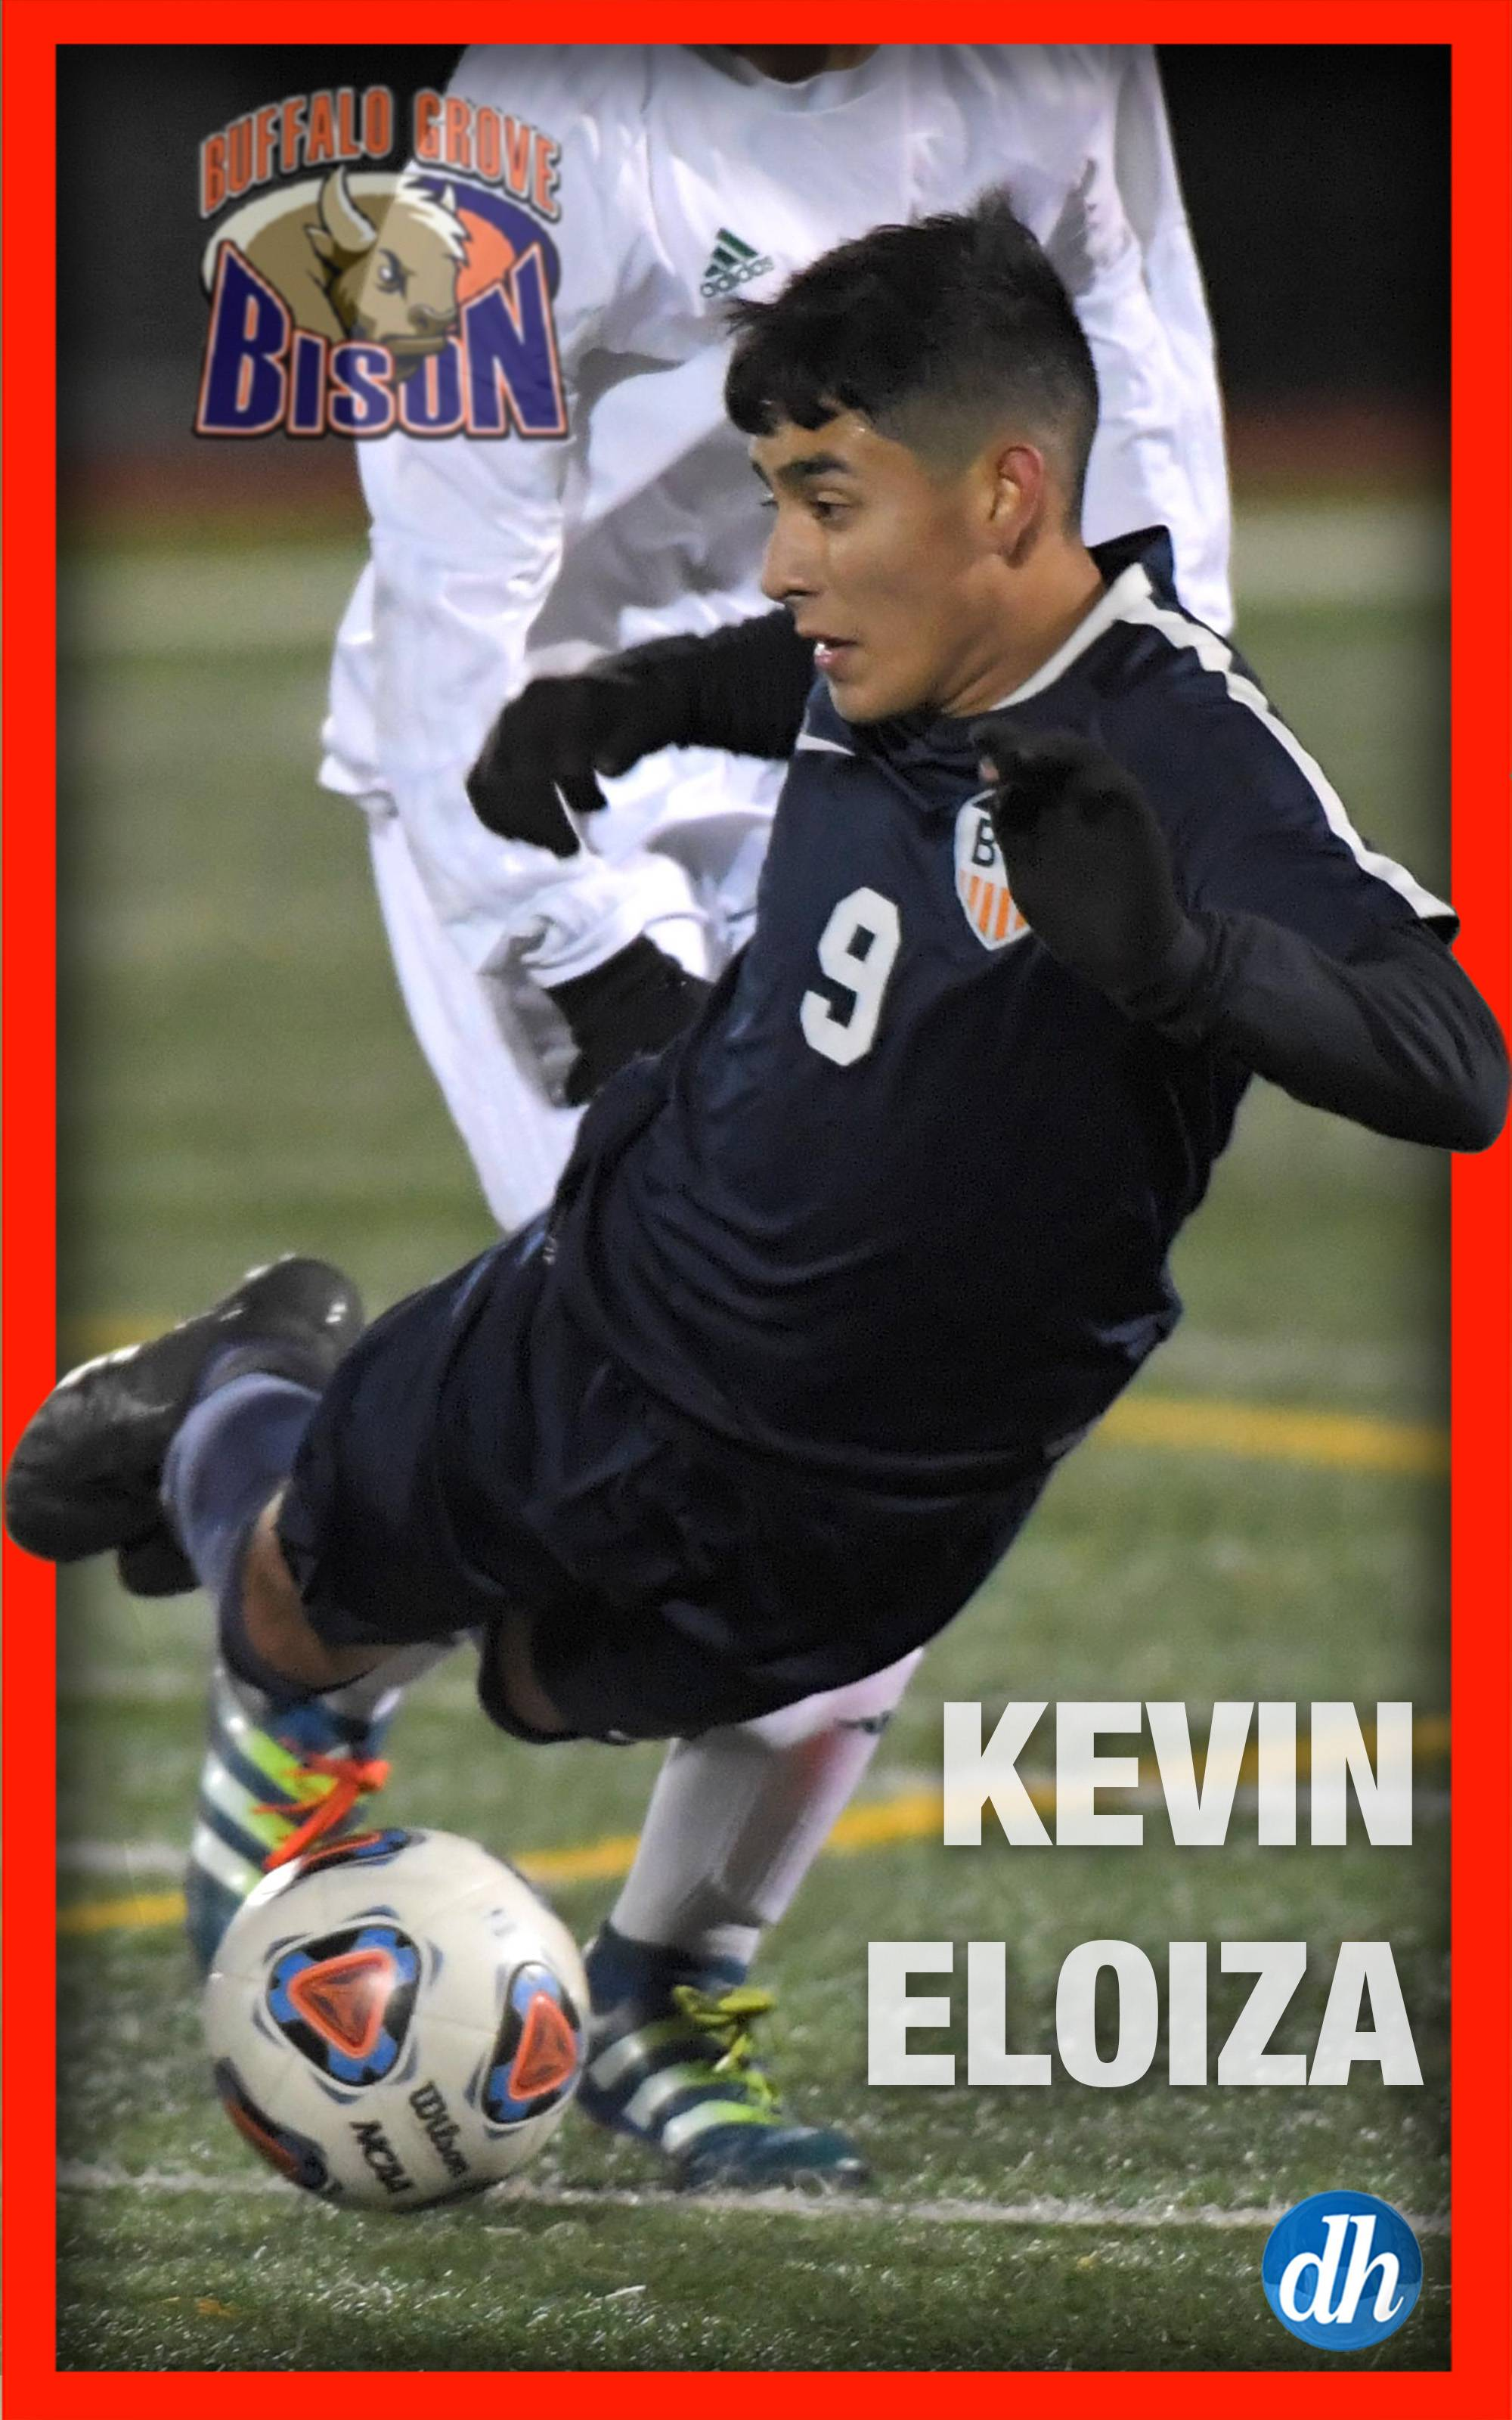 Kevin Eloiza of Buffalo Grove High School is the All-Area team captain in boys soccer in the Northwest.